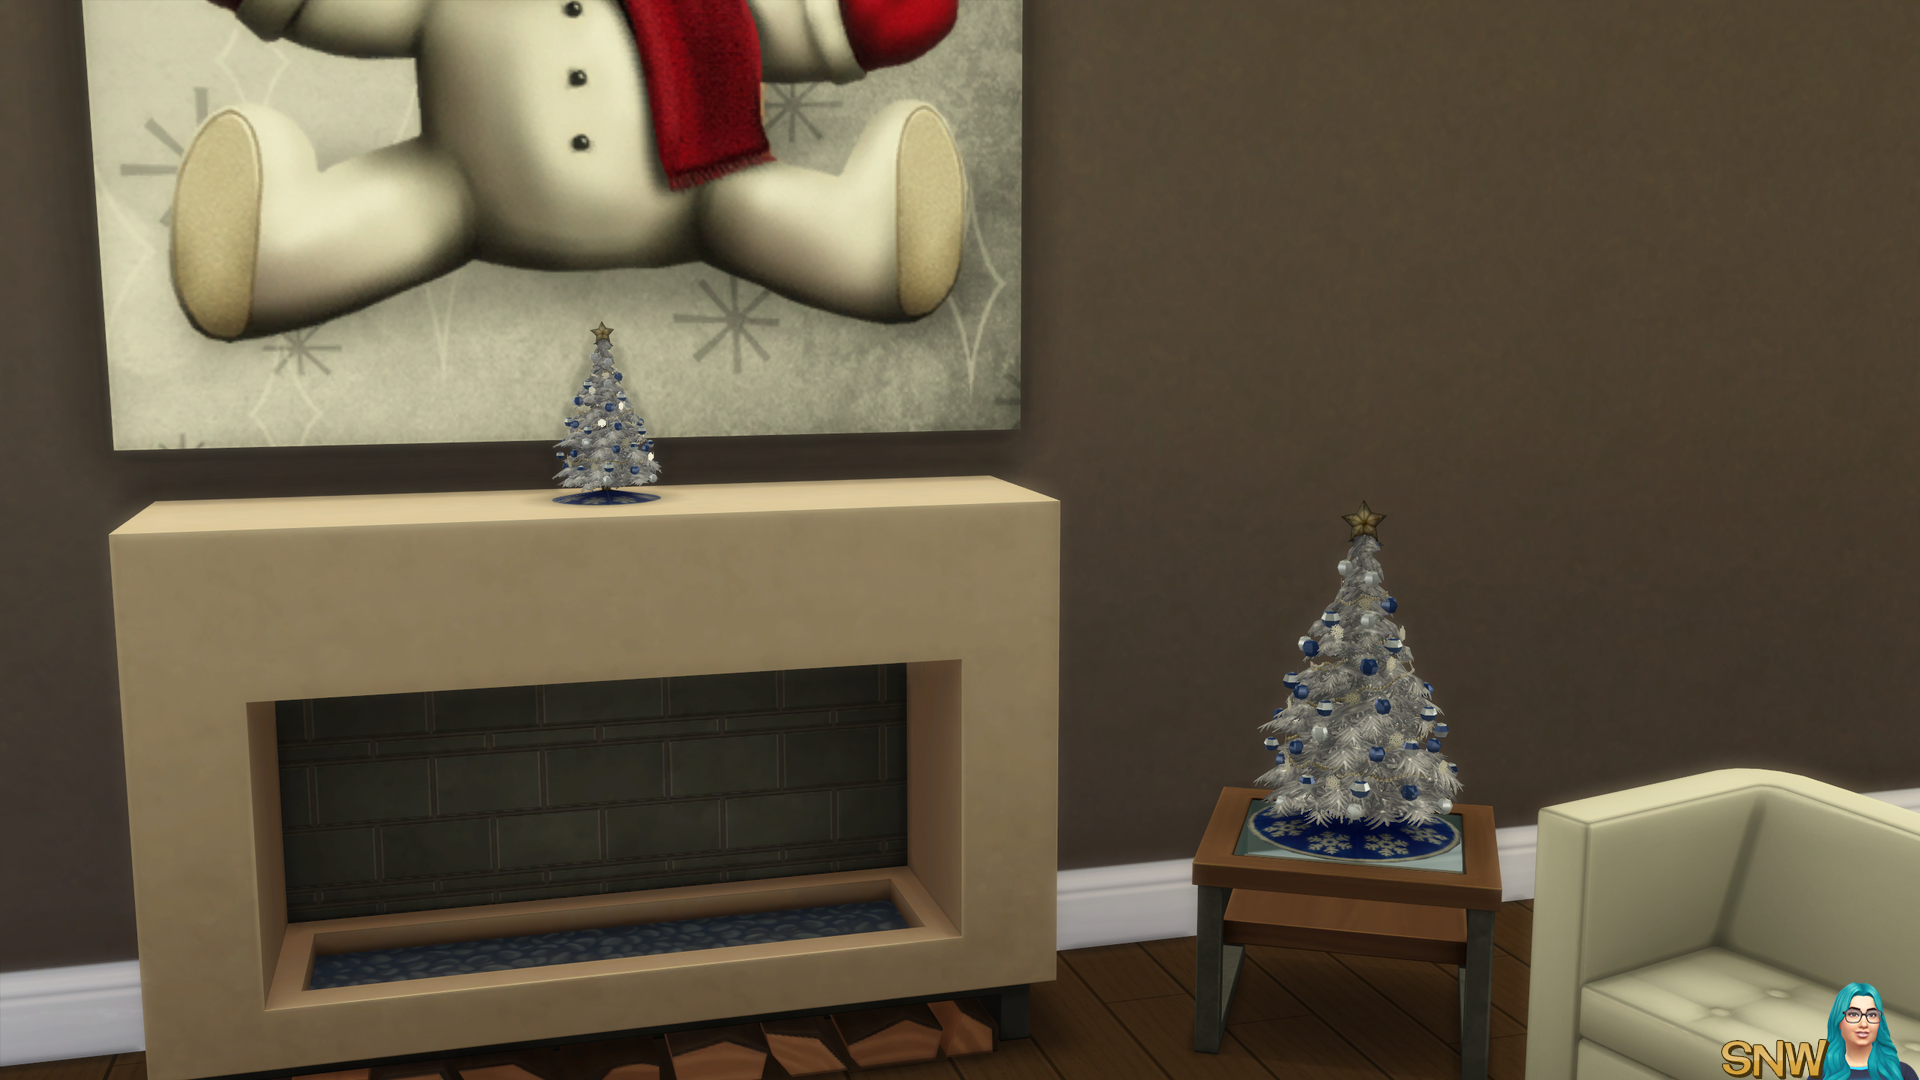 Sims 3 Christmas Tree.Christmas Trees 3 Sizes Snw Simsnetwork Com